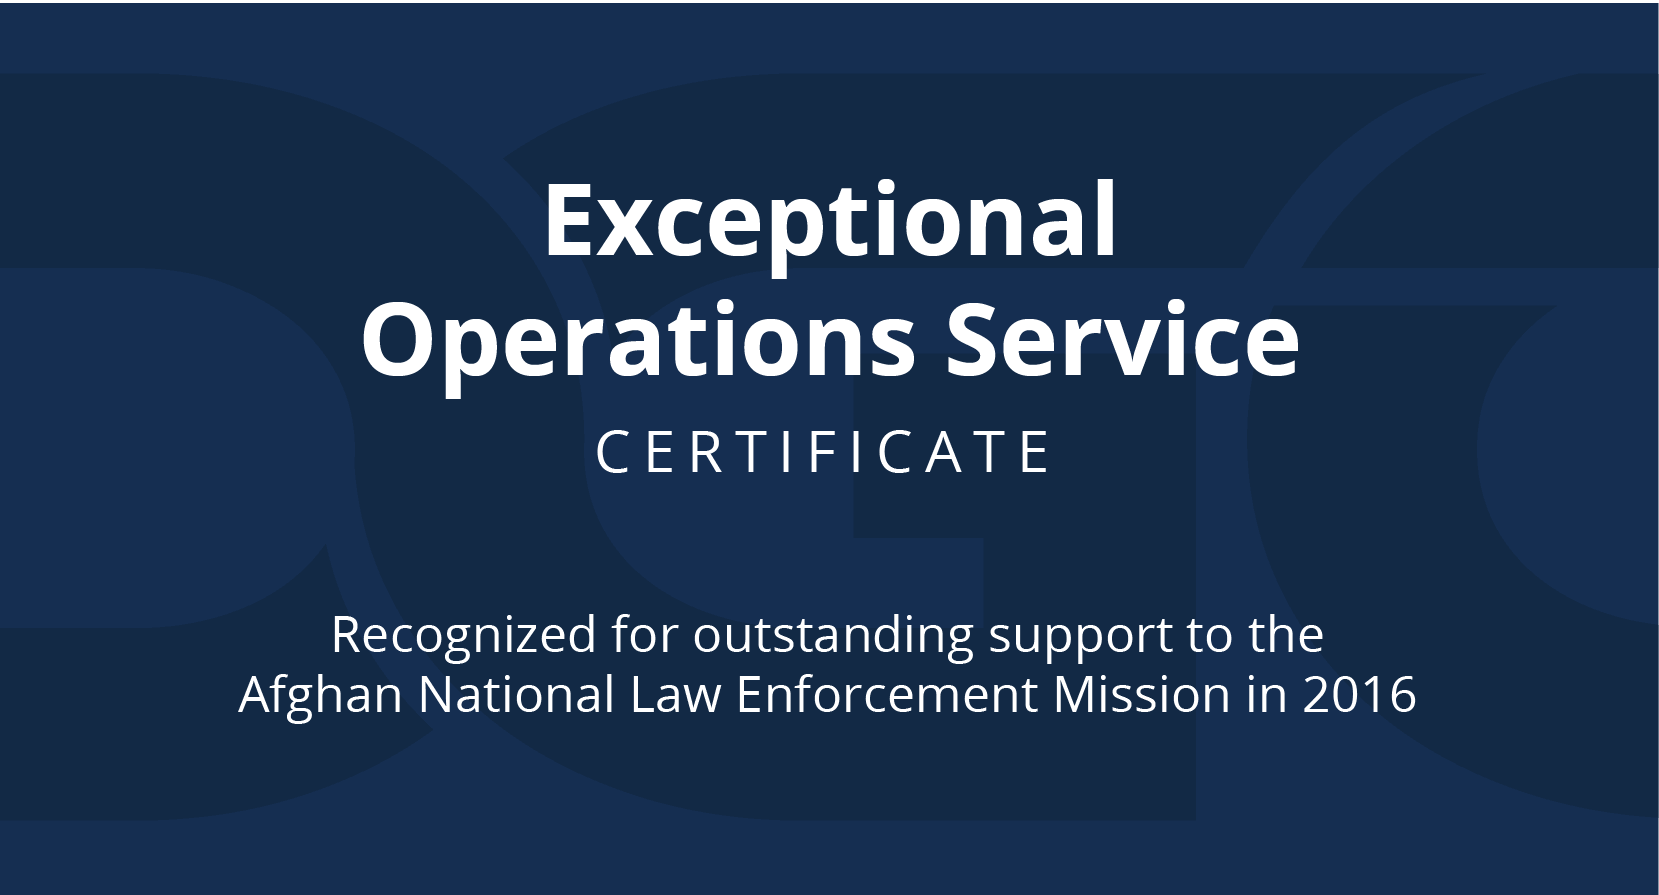 Exceptional Operations award banner